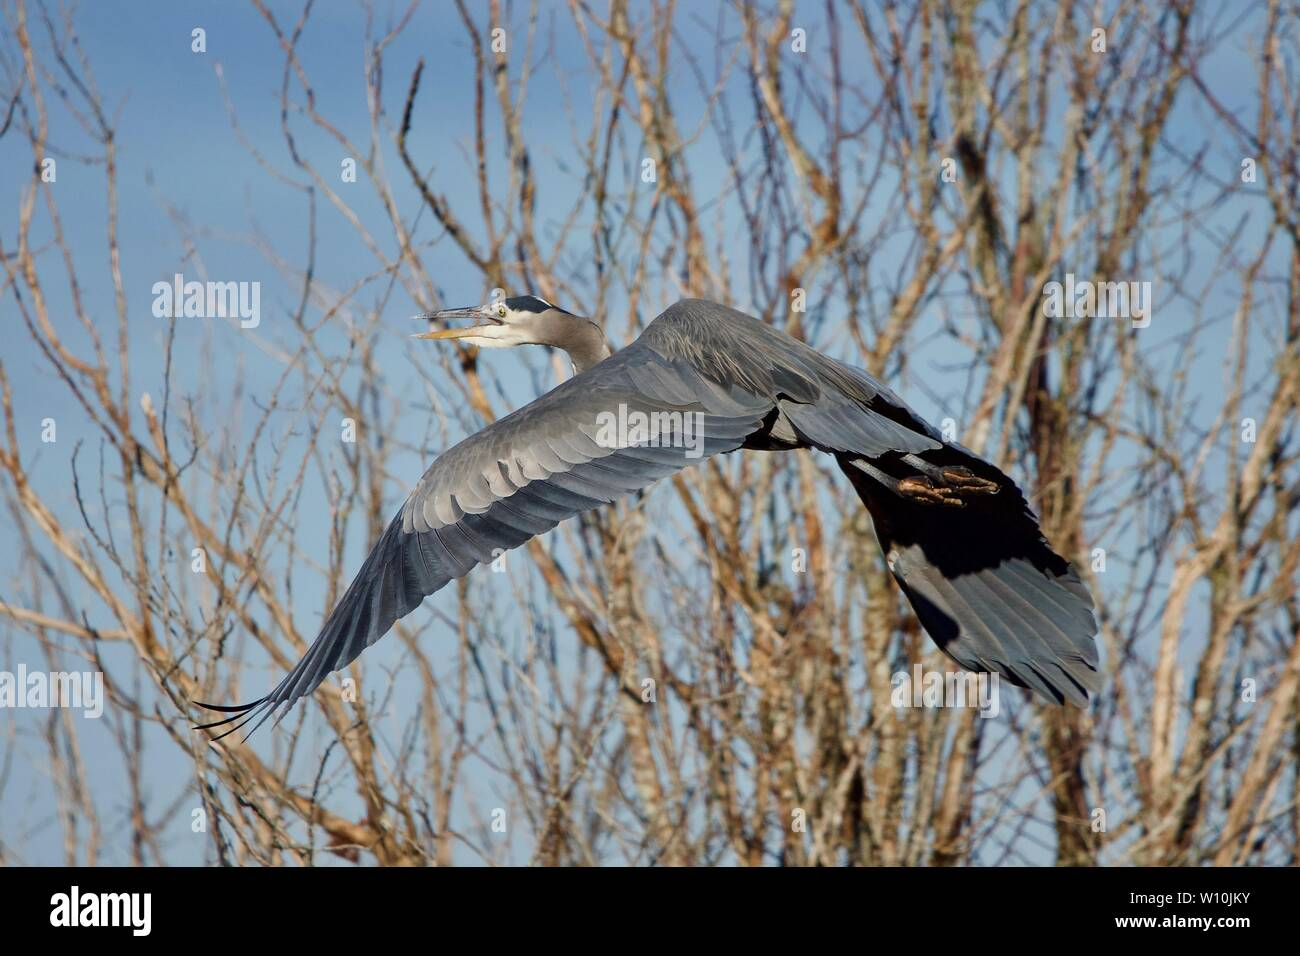 Great blue heron takes off through the trees with a squawk near Island View Beach, Vancouver Island, British Columbia. Stock Photo